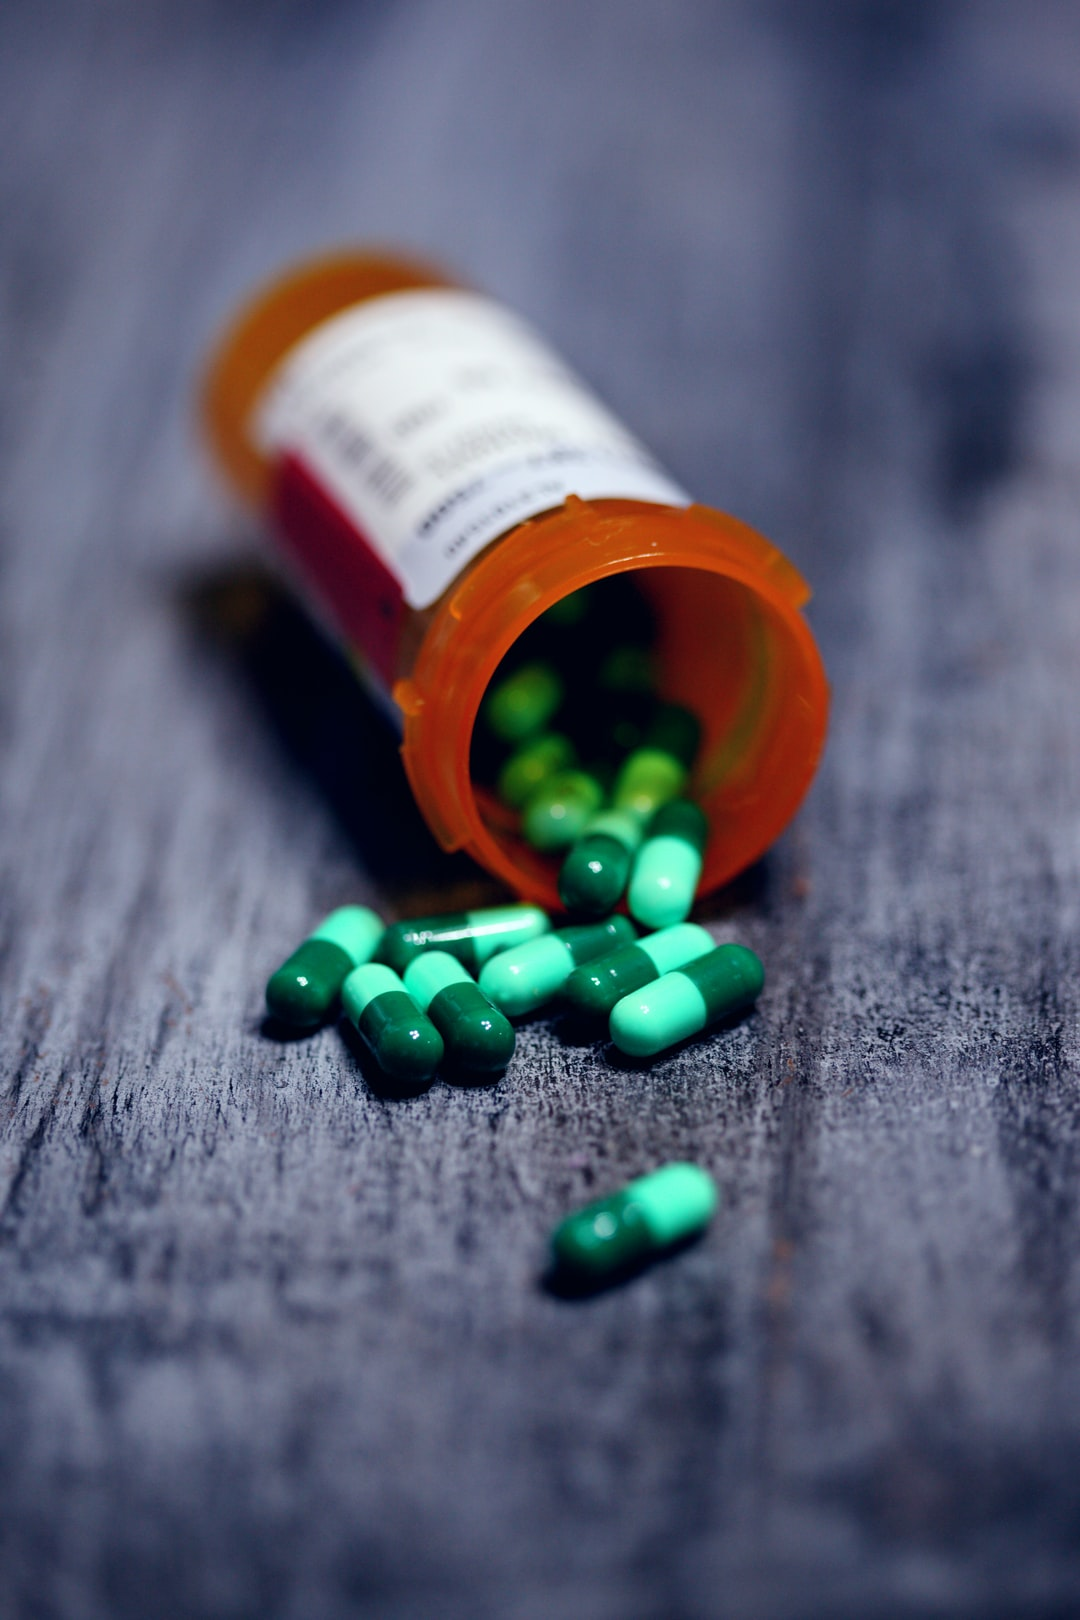 A warning about ACE-Inhibitors (a prescription blood pressure medicine) and Coronavirus